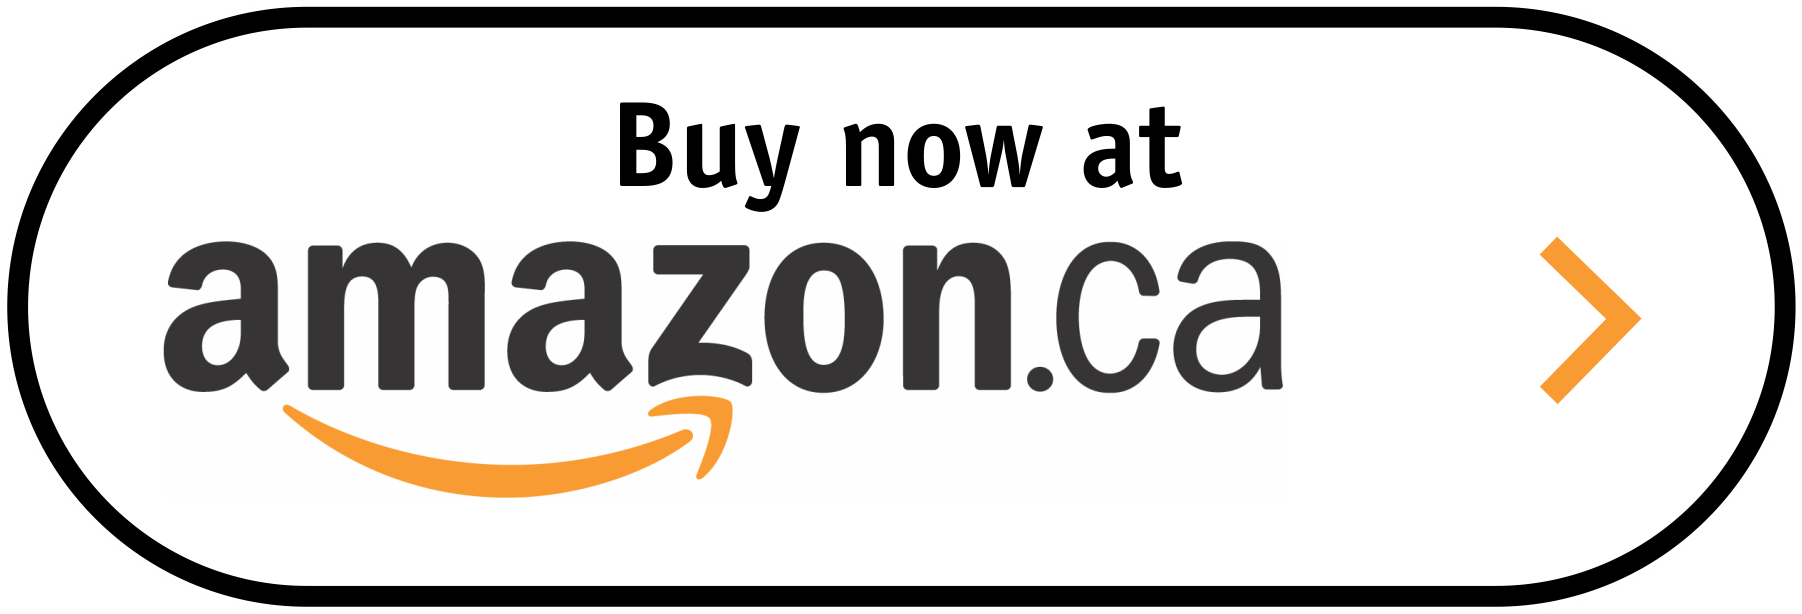 Buy now at Amazon.ca.PNG